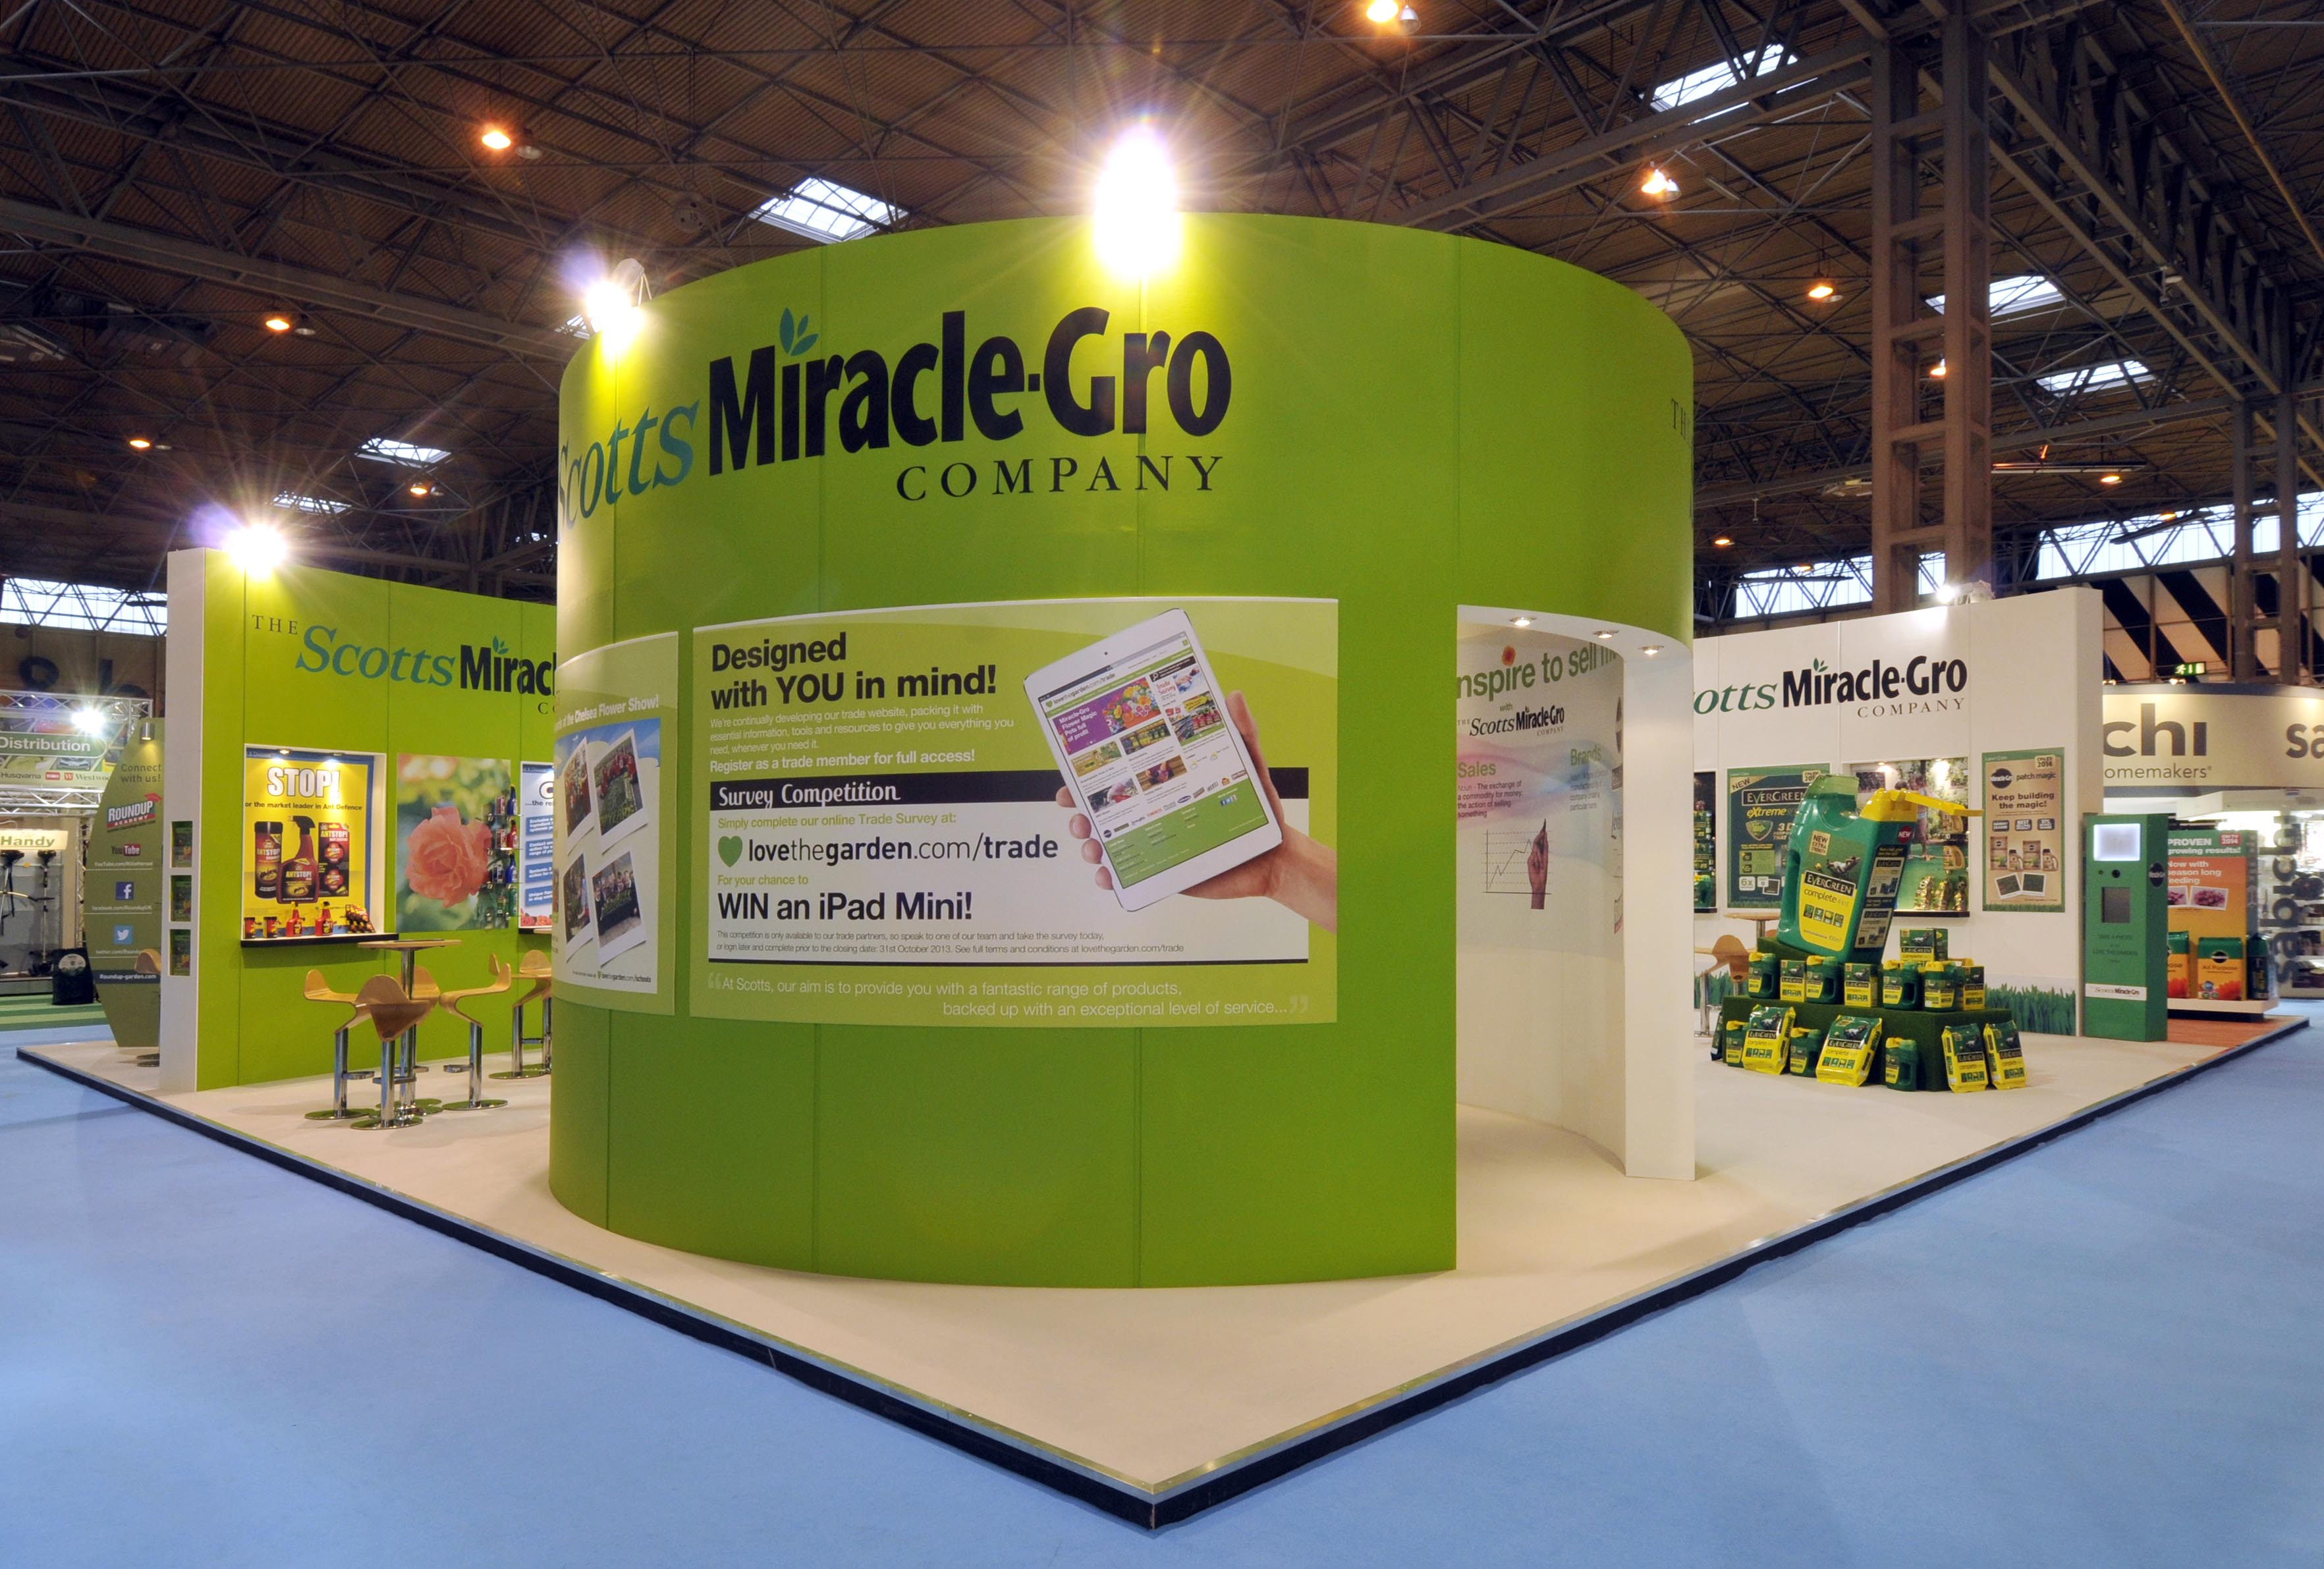 "summary of case study scotts miracle gro company Scotts miracle-gro case study essay sample laura mosierscm-professor yorkcase study #1""scott's miracle-gro""scotts miracle-gro, the largest company in the north american lawn and garden industry, has reached a point in its existence to make a significant management decision."